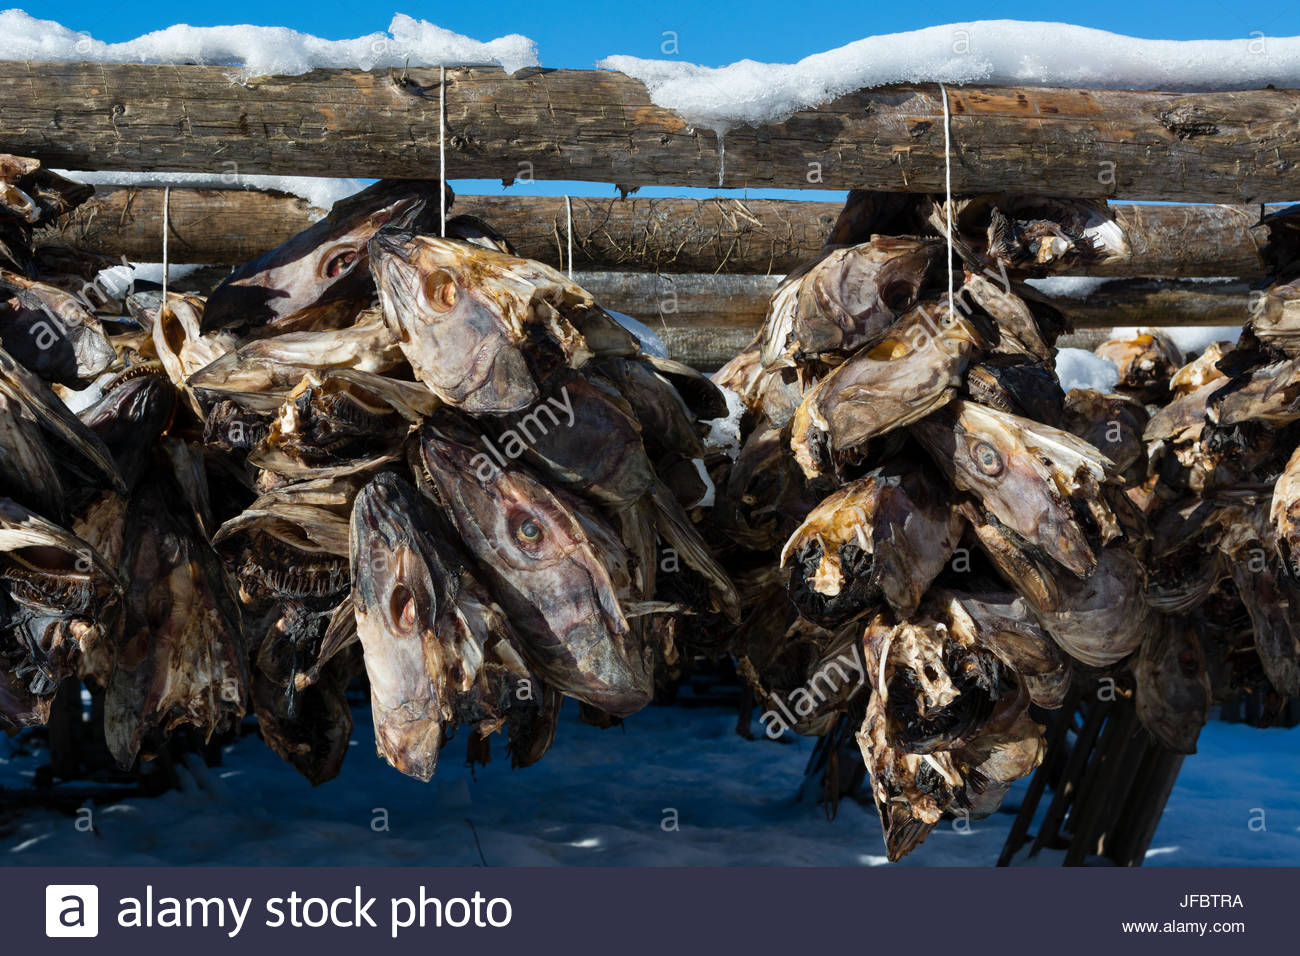 Strings of cod fish heads hanging from a drying rack in the traditional manner. - Stock Image